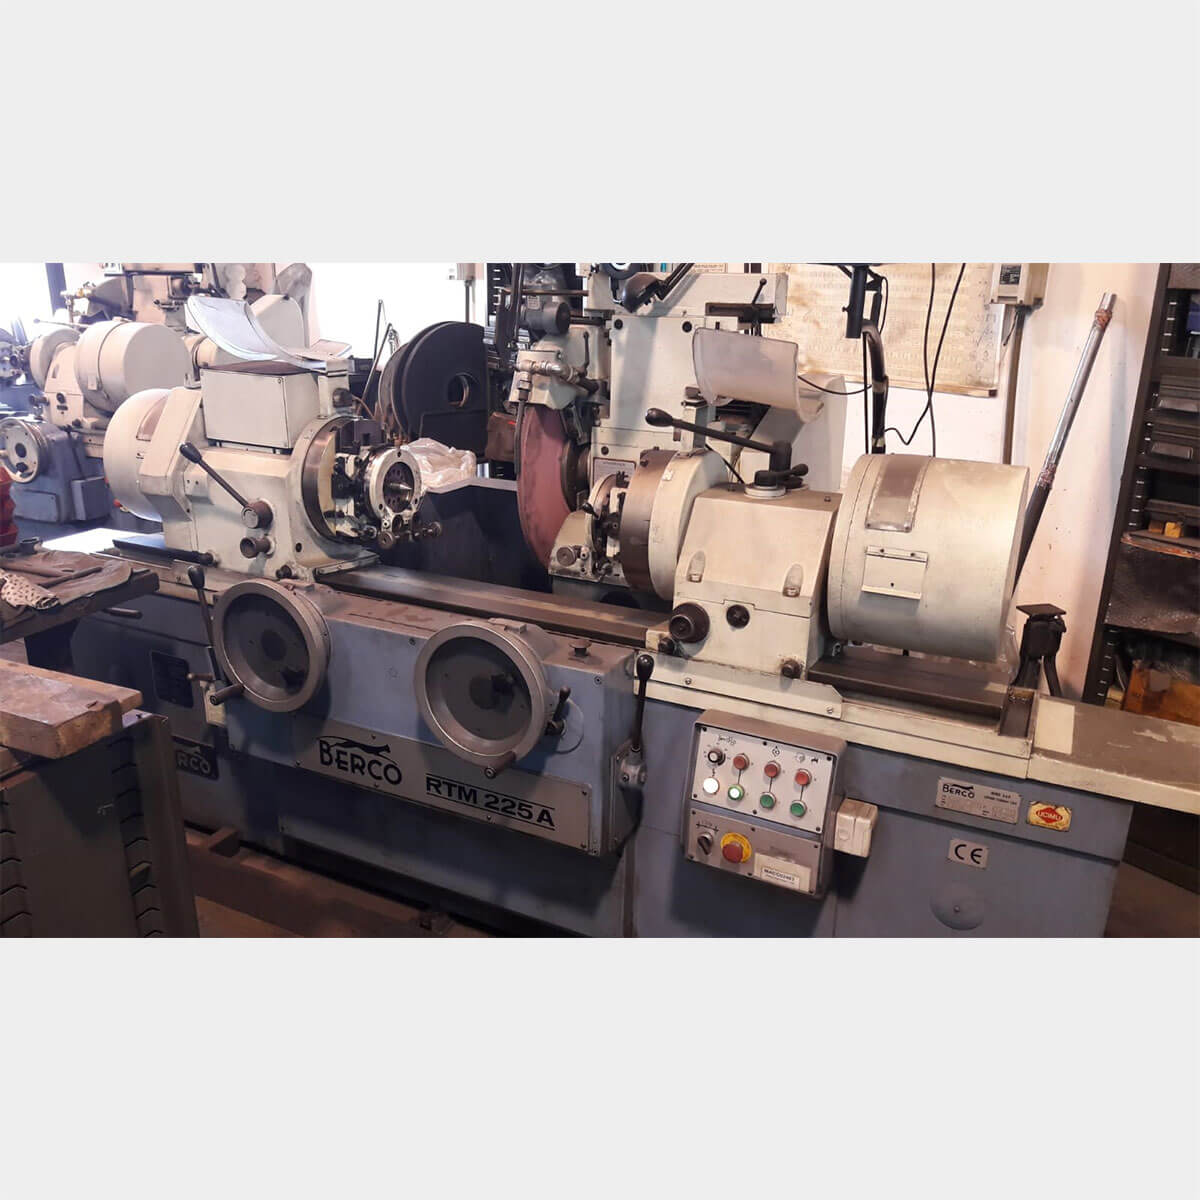 berco rtm225a 1275 crankshaft grinding machine